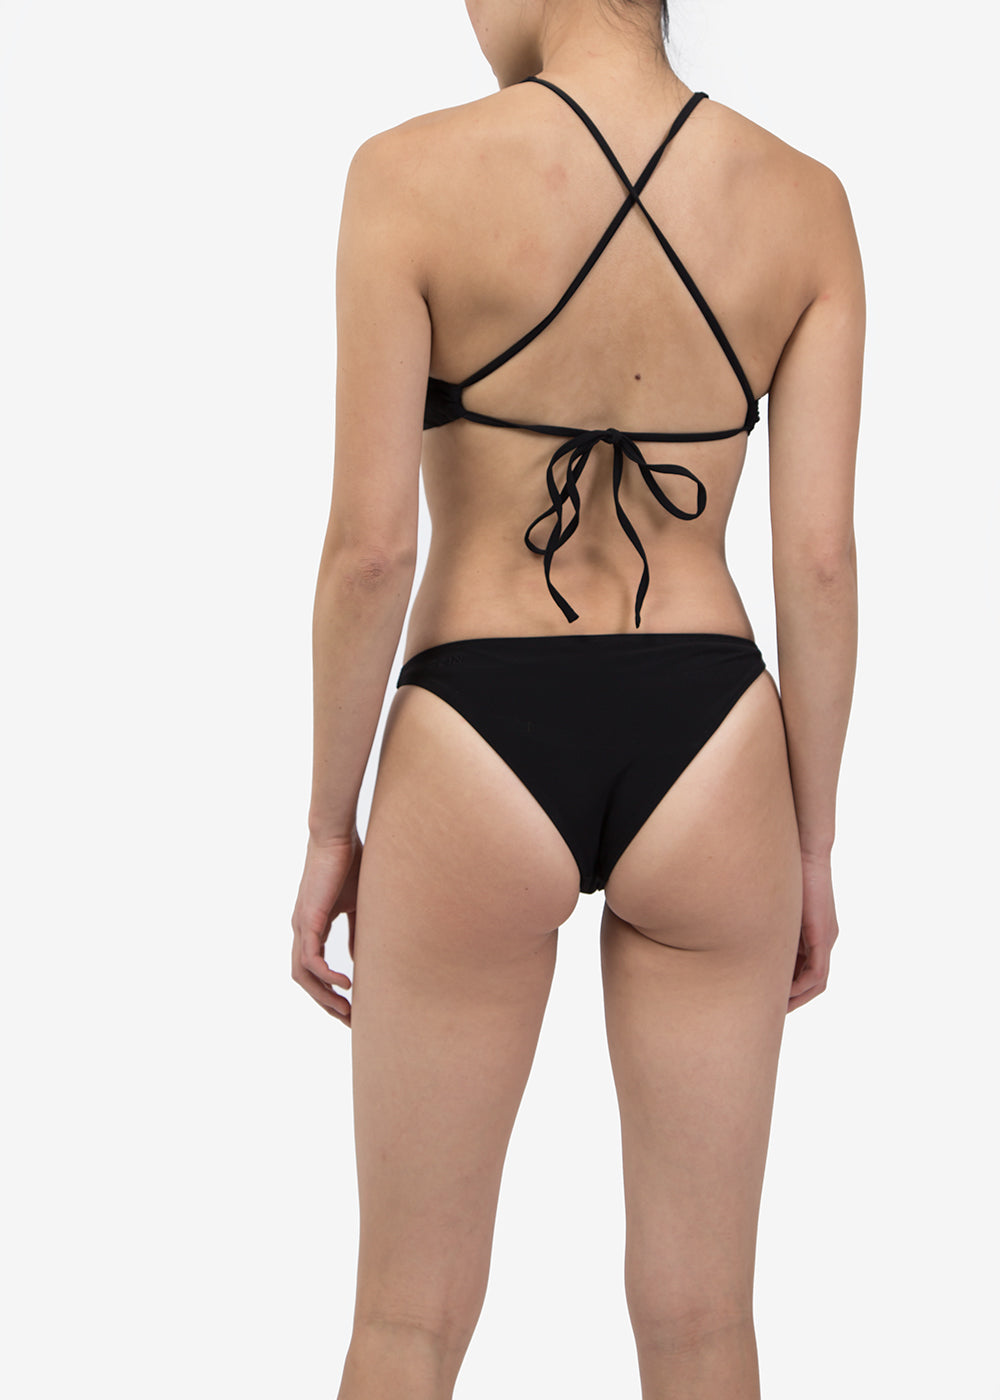 OCIN Black Halter Swim Top — Shop sustainable fashion and slow fashion at New Classics Studios